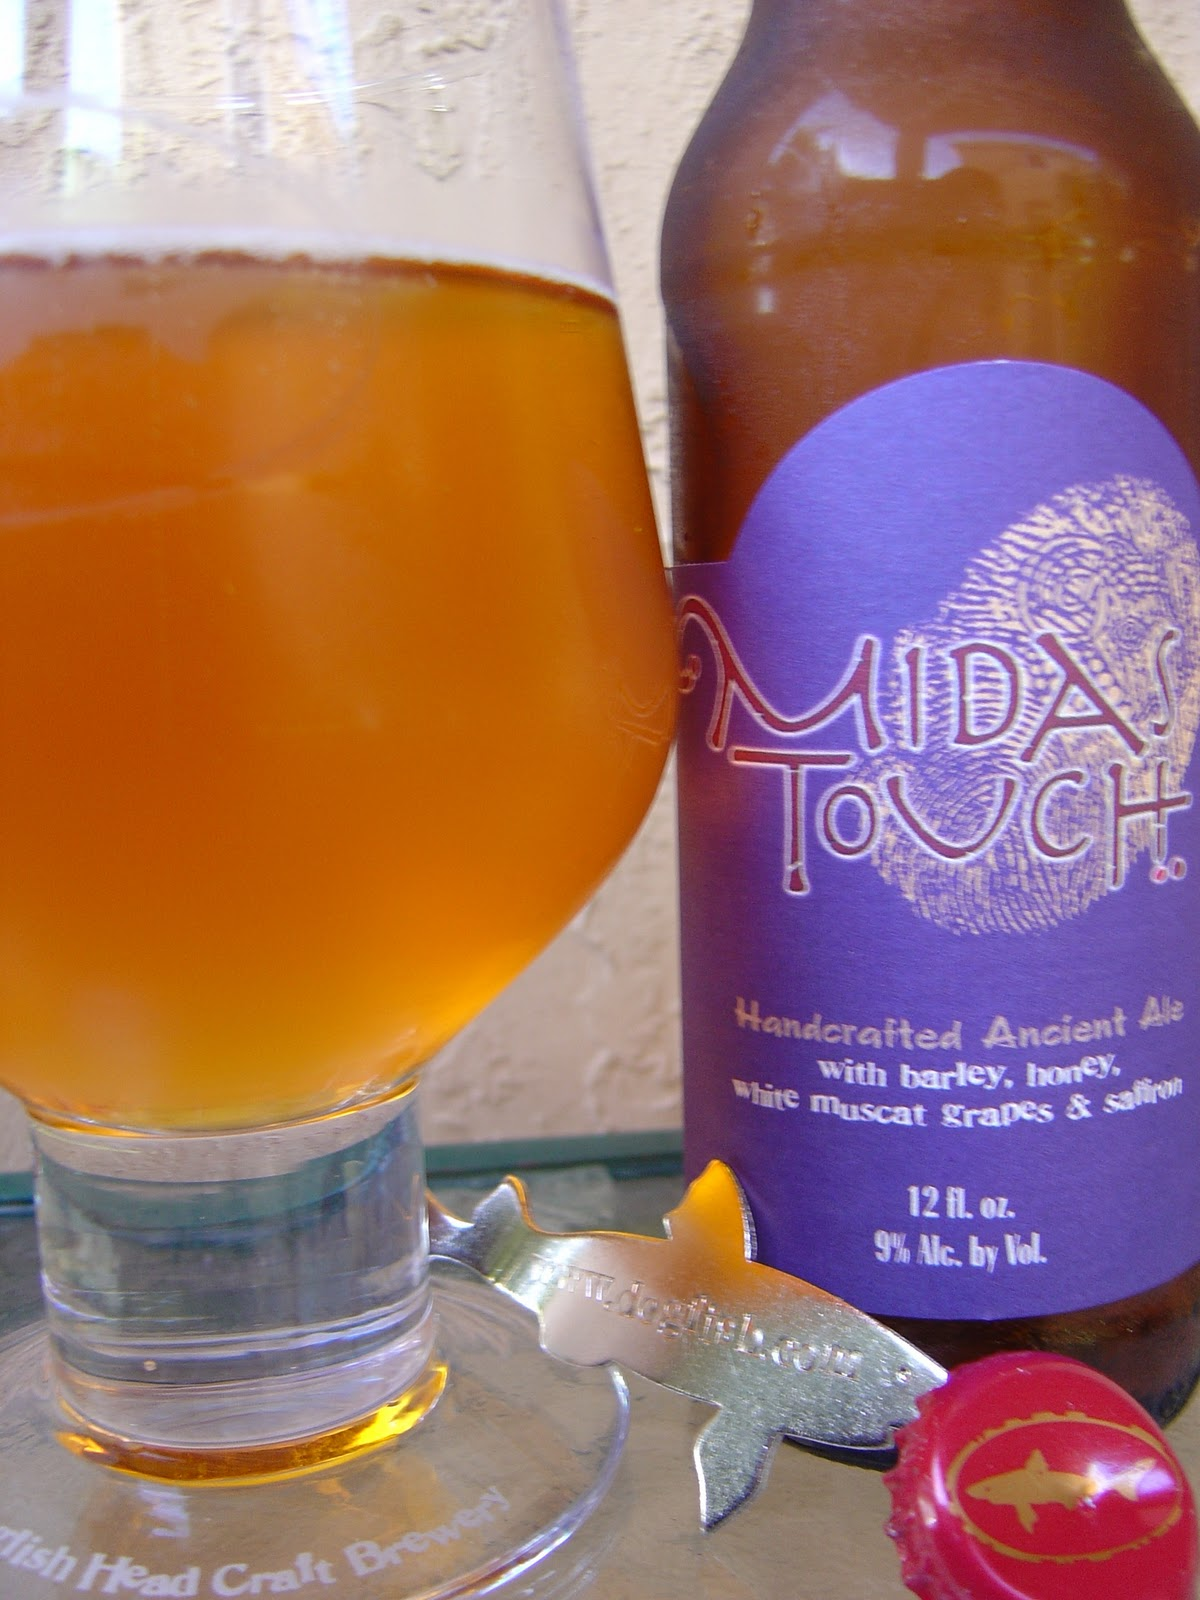 Daily Beer Review: Midas Touch